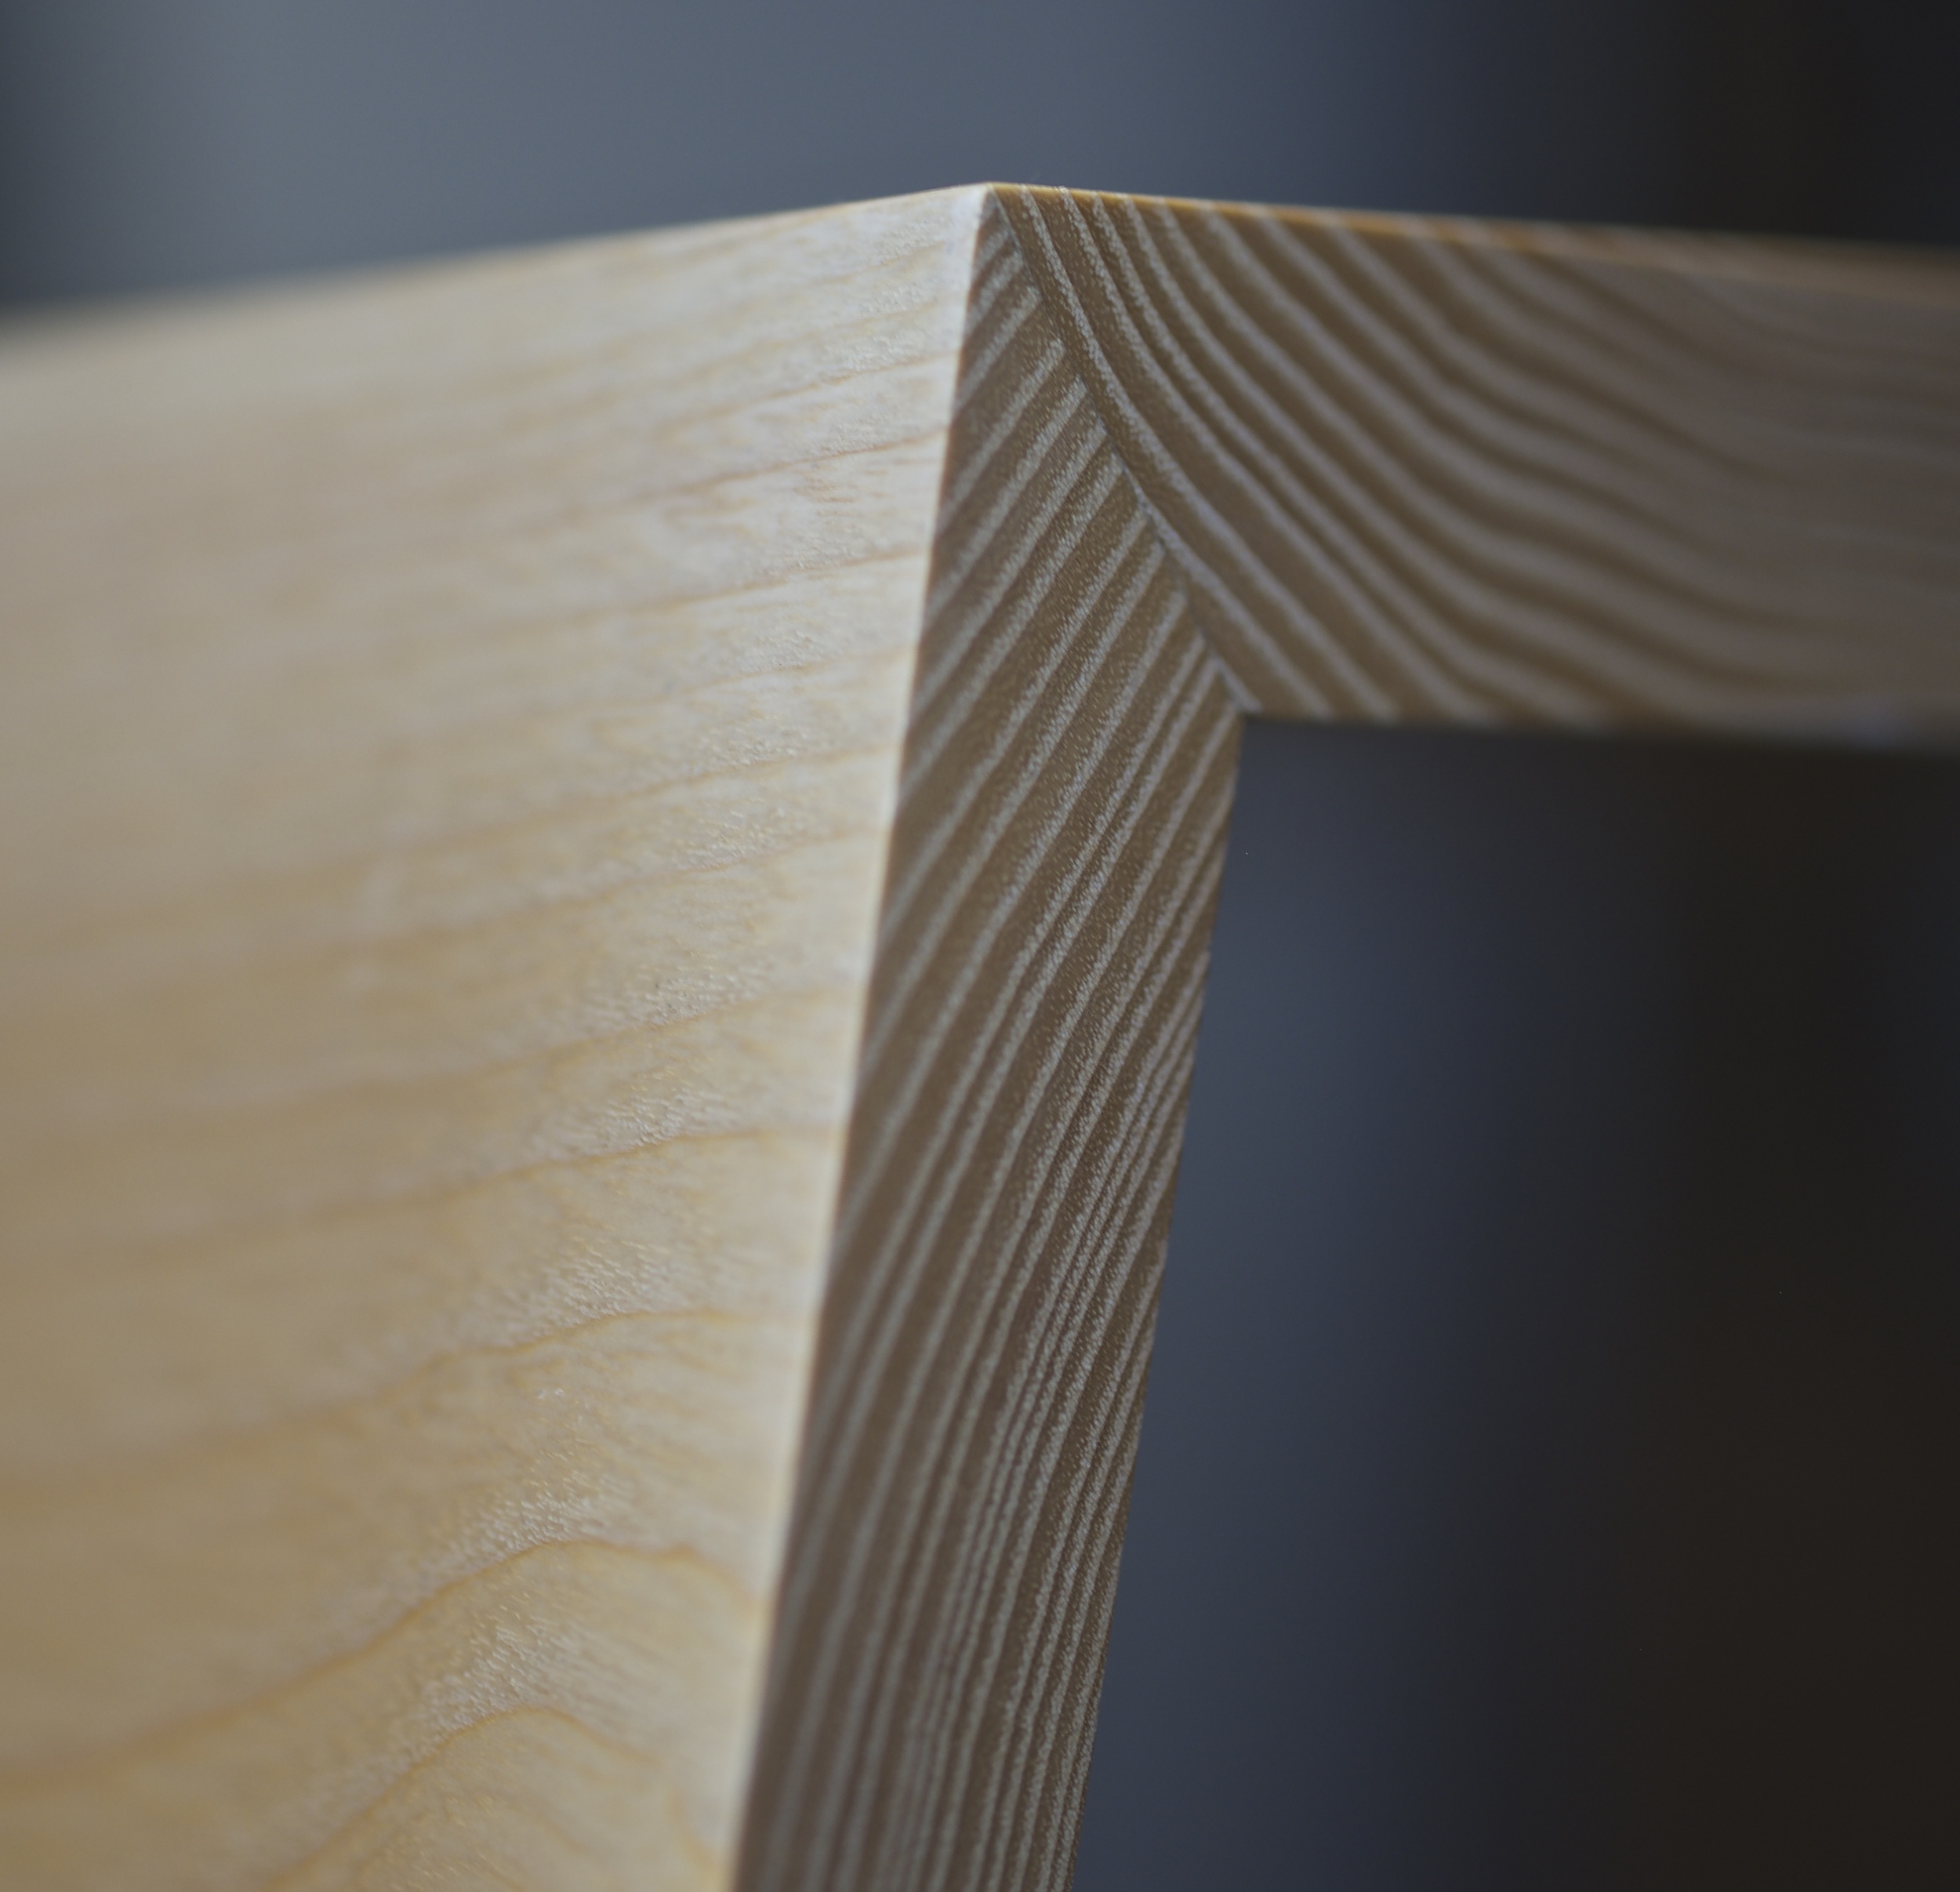 Origami Coffee Table - Mitre detail and close up of the crown cut grain.